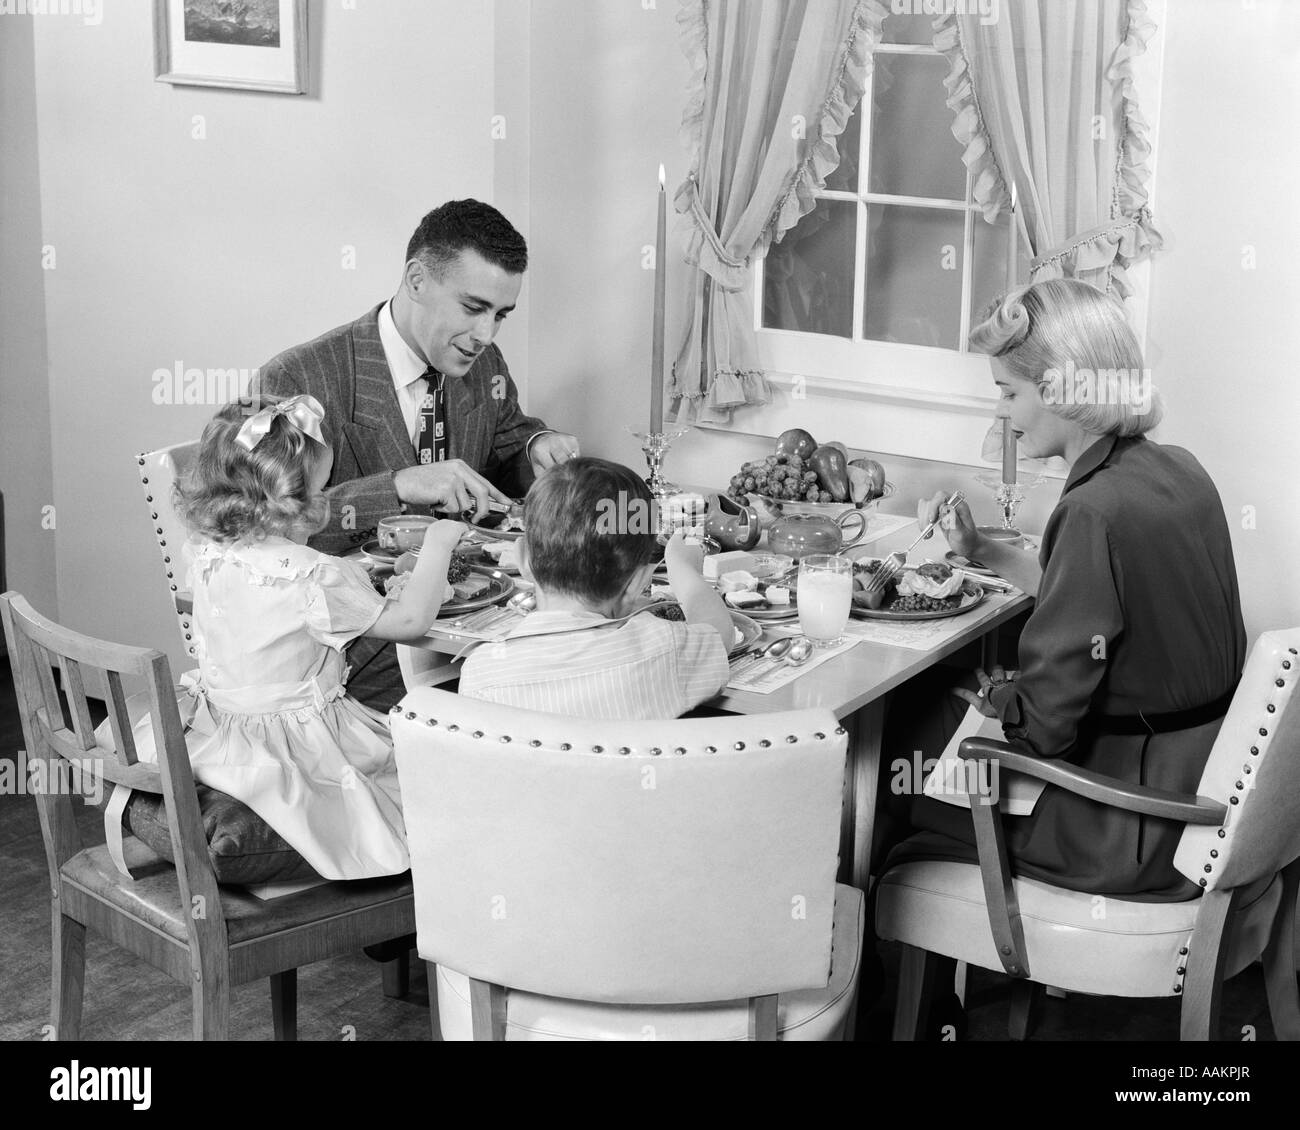 1950s FAMILY OF FOUR EATING DINNER TOGETHER - Stock Image